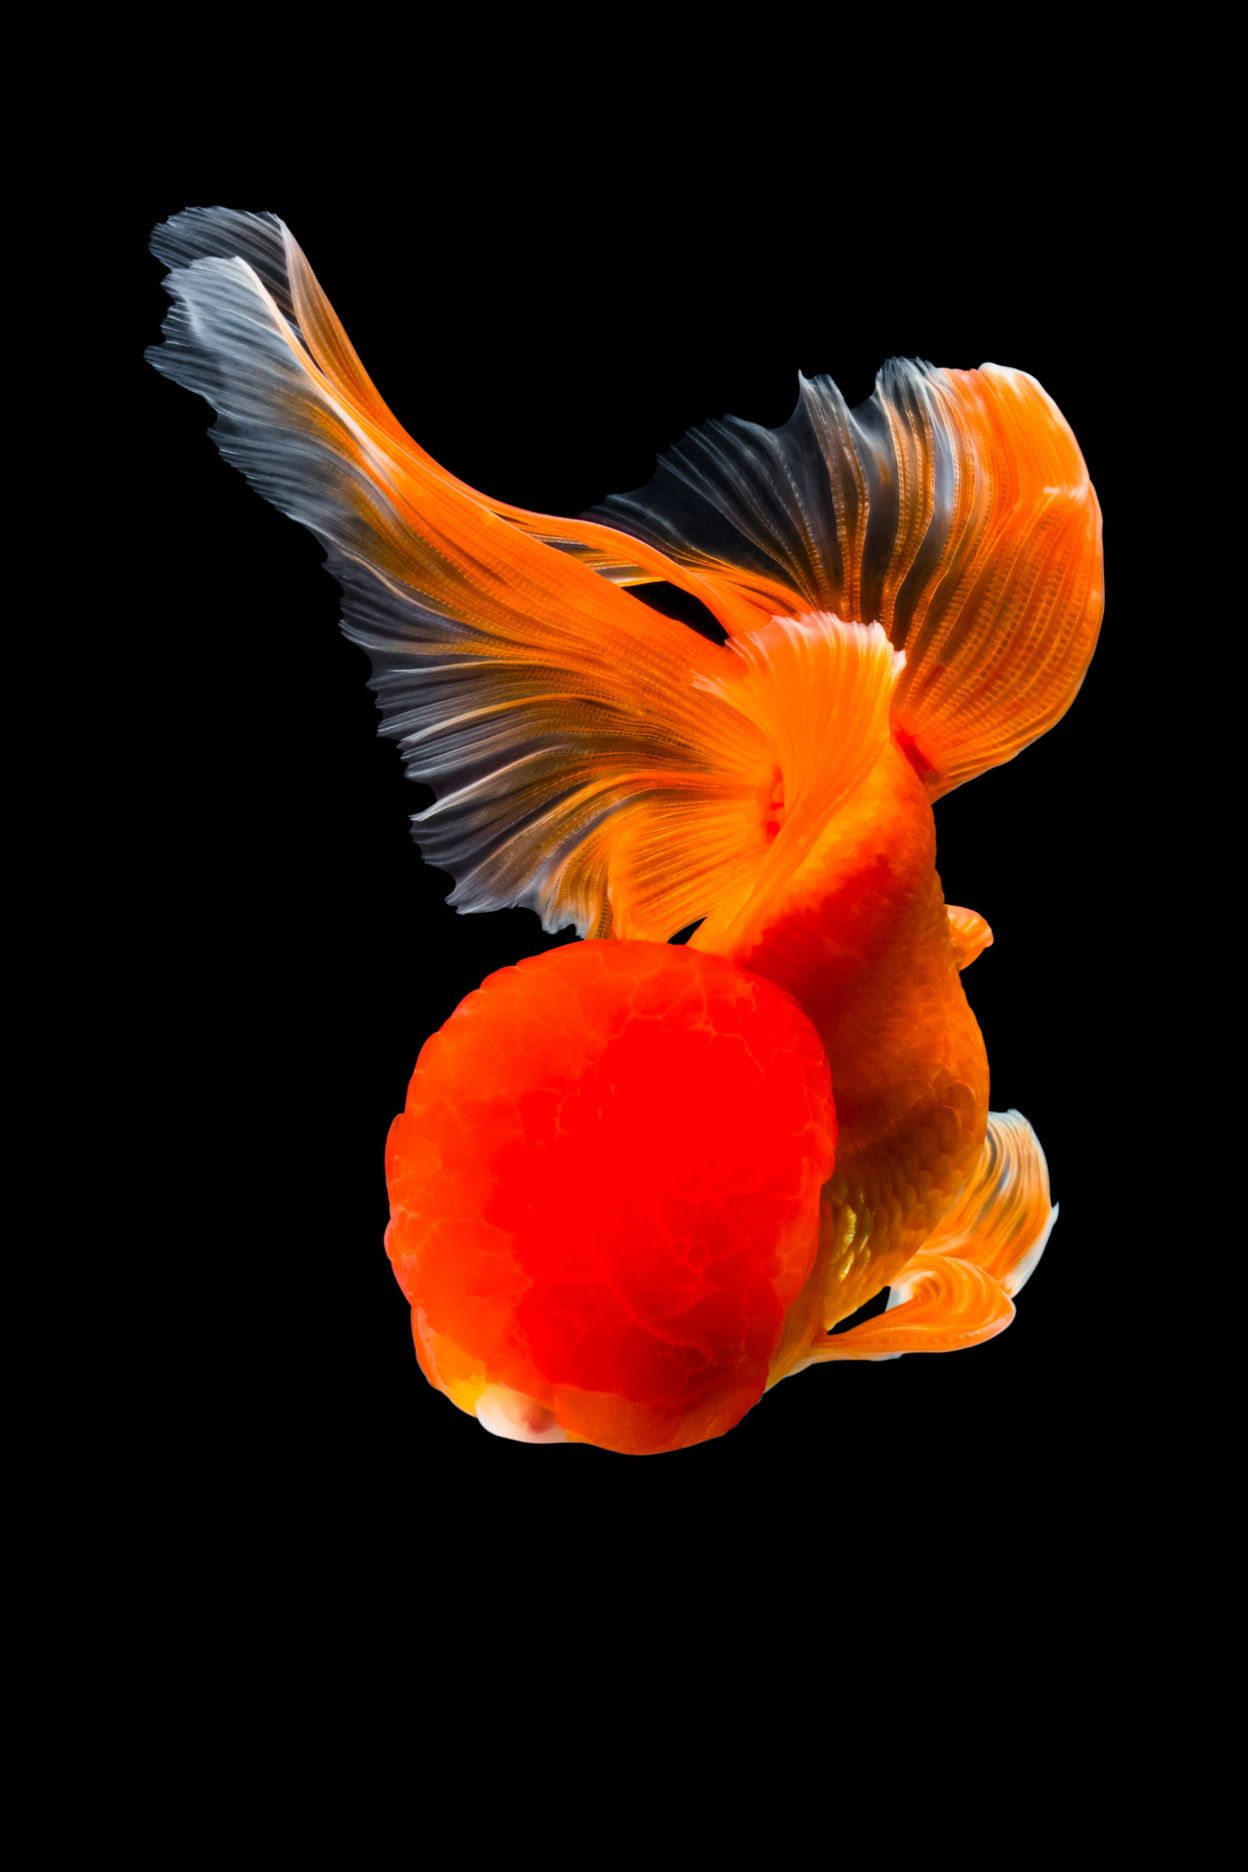 Richly Hued Portraits Of Elegant Chinese Goldfish By Tsubaki Goldfish Fish Art Colossal Art